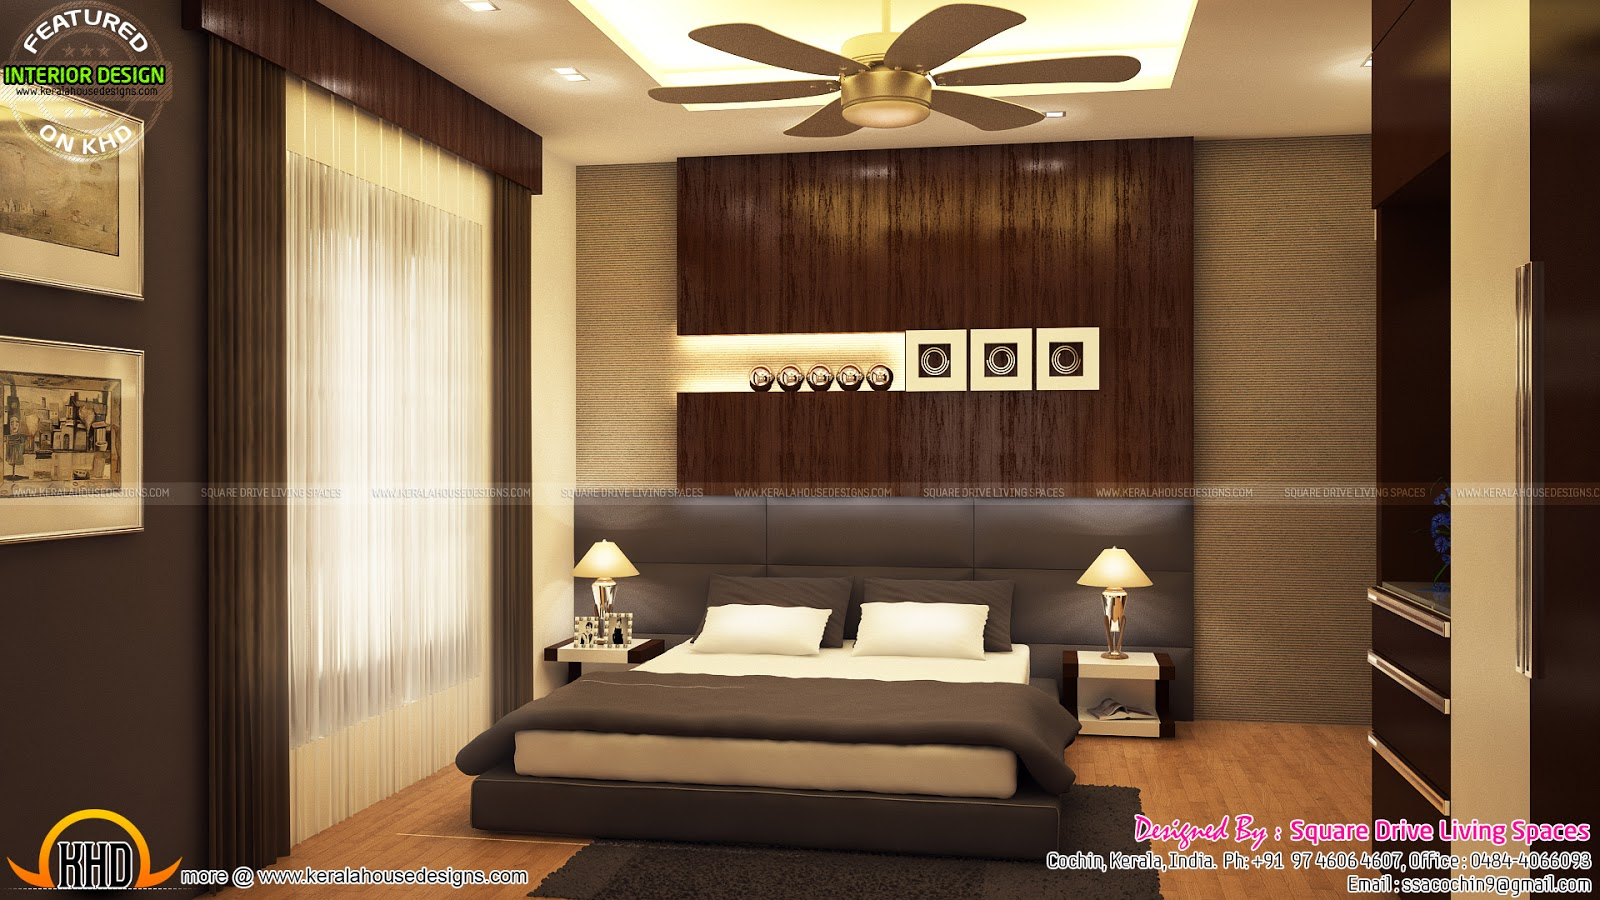 Interior designs of master bedroom living kitchen and for Interior furniture design for bedroom